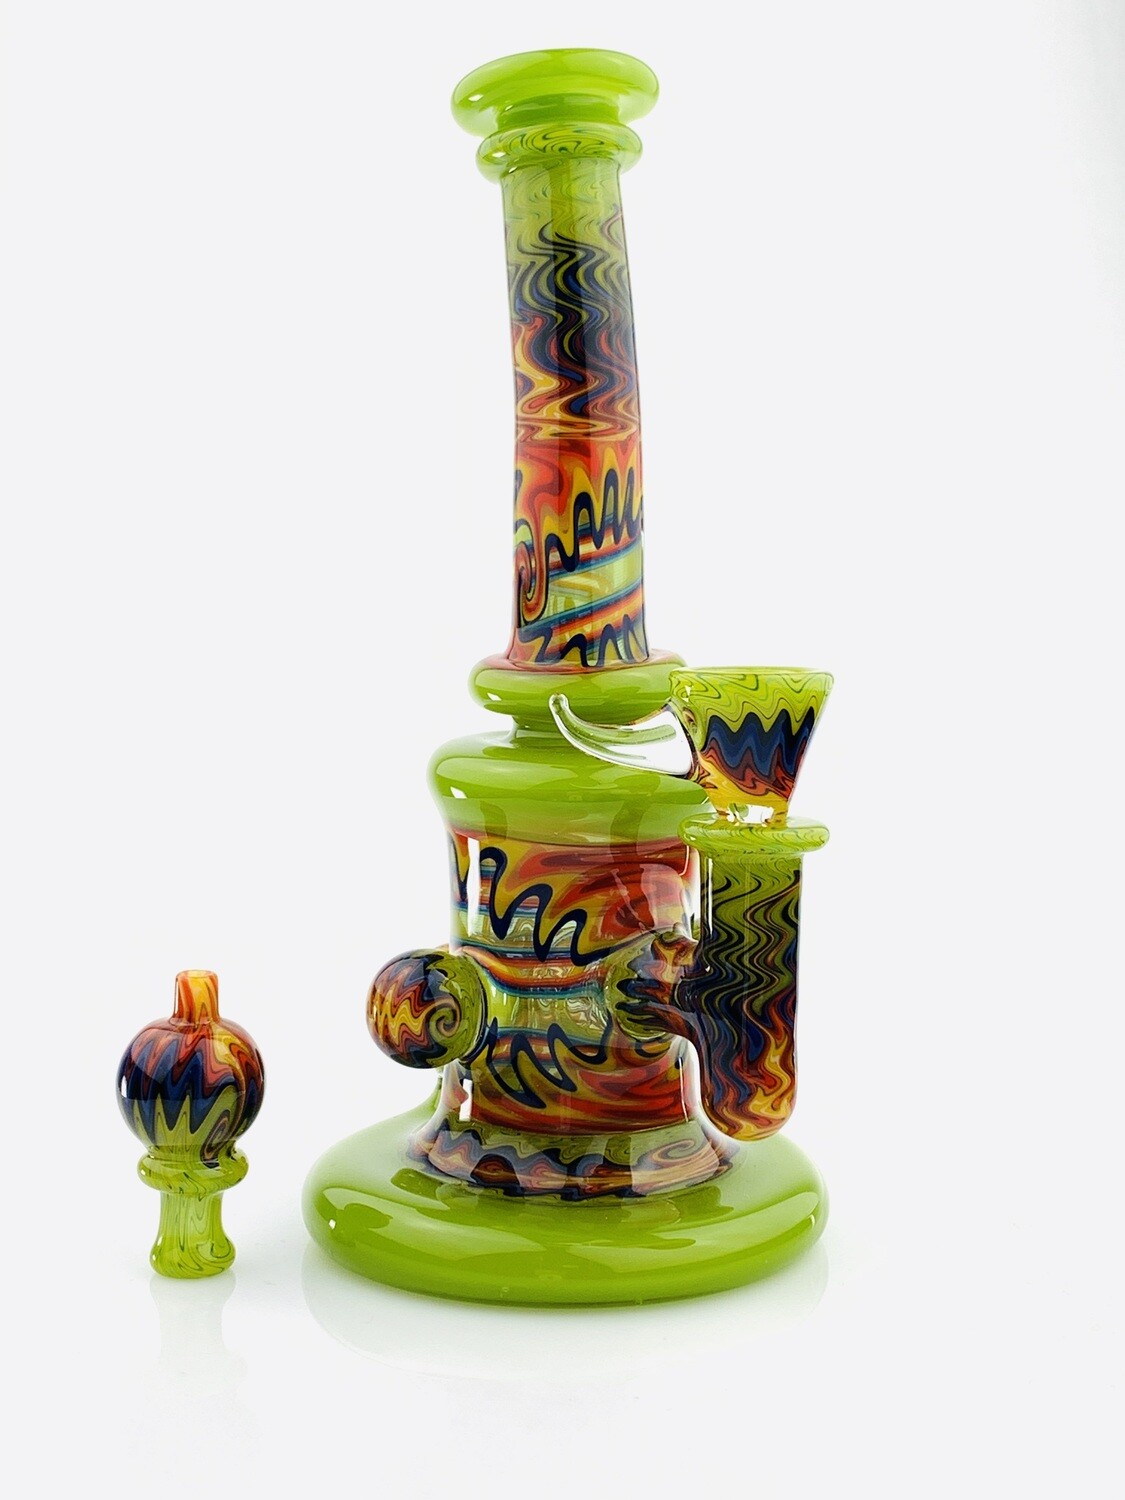 Andy G Layered Tube With Slide & Bubble Cap